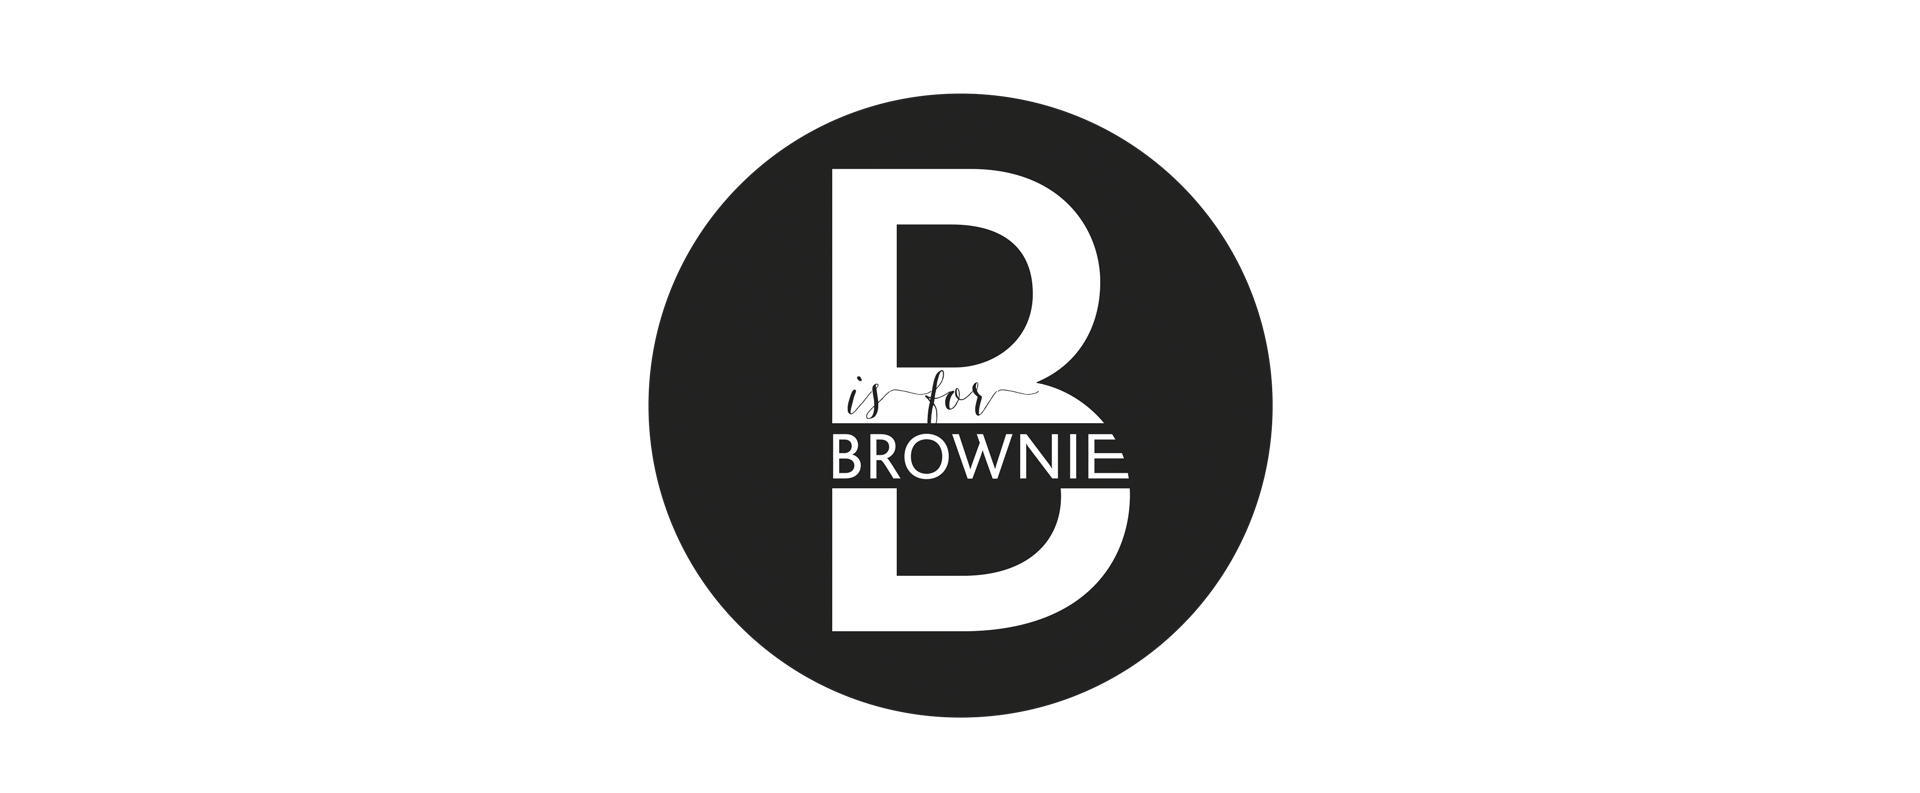 B is for Brownie